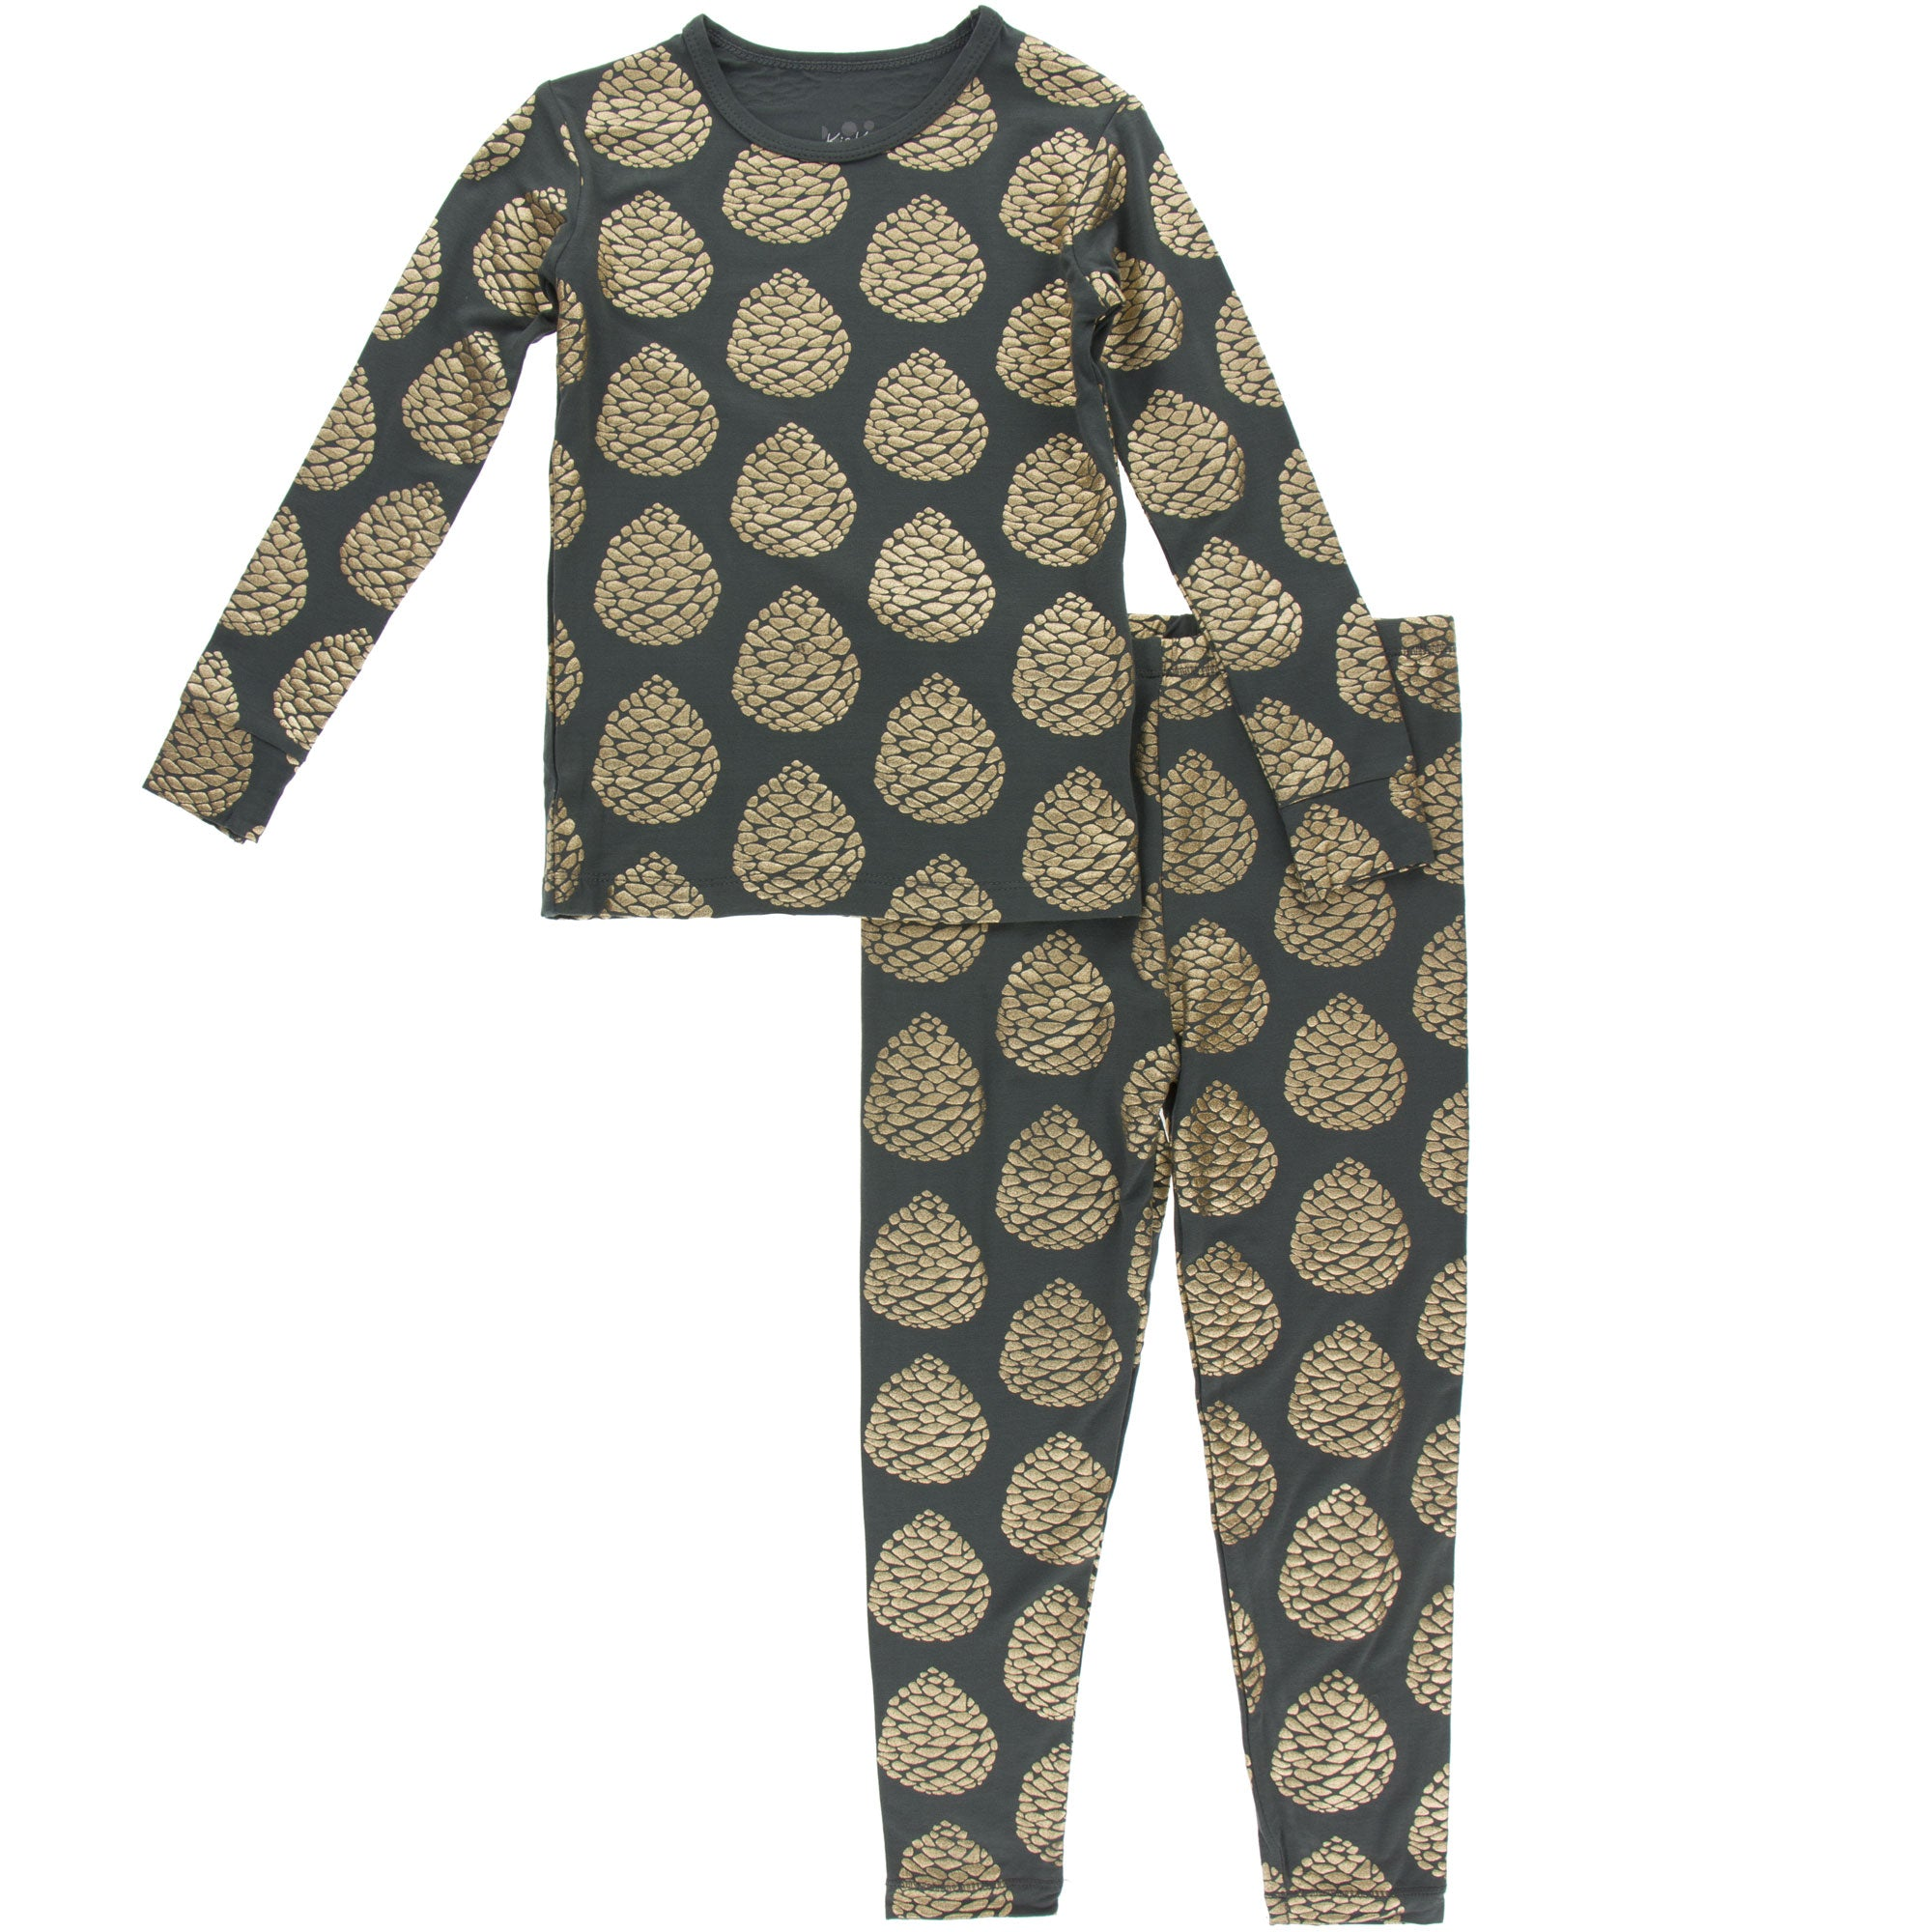 KicKee Pants Pajama Set - Pewter Pinecones